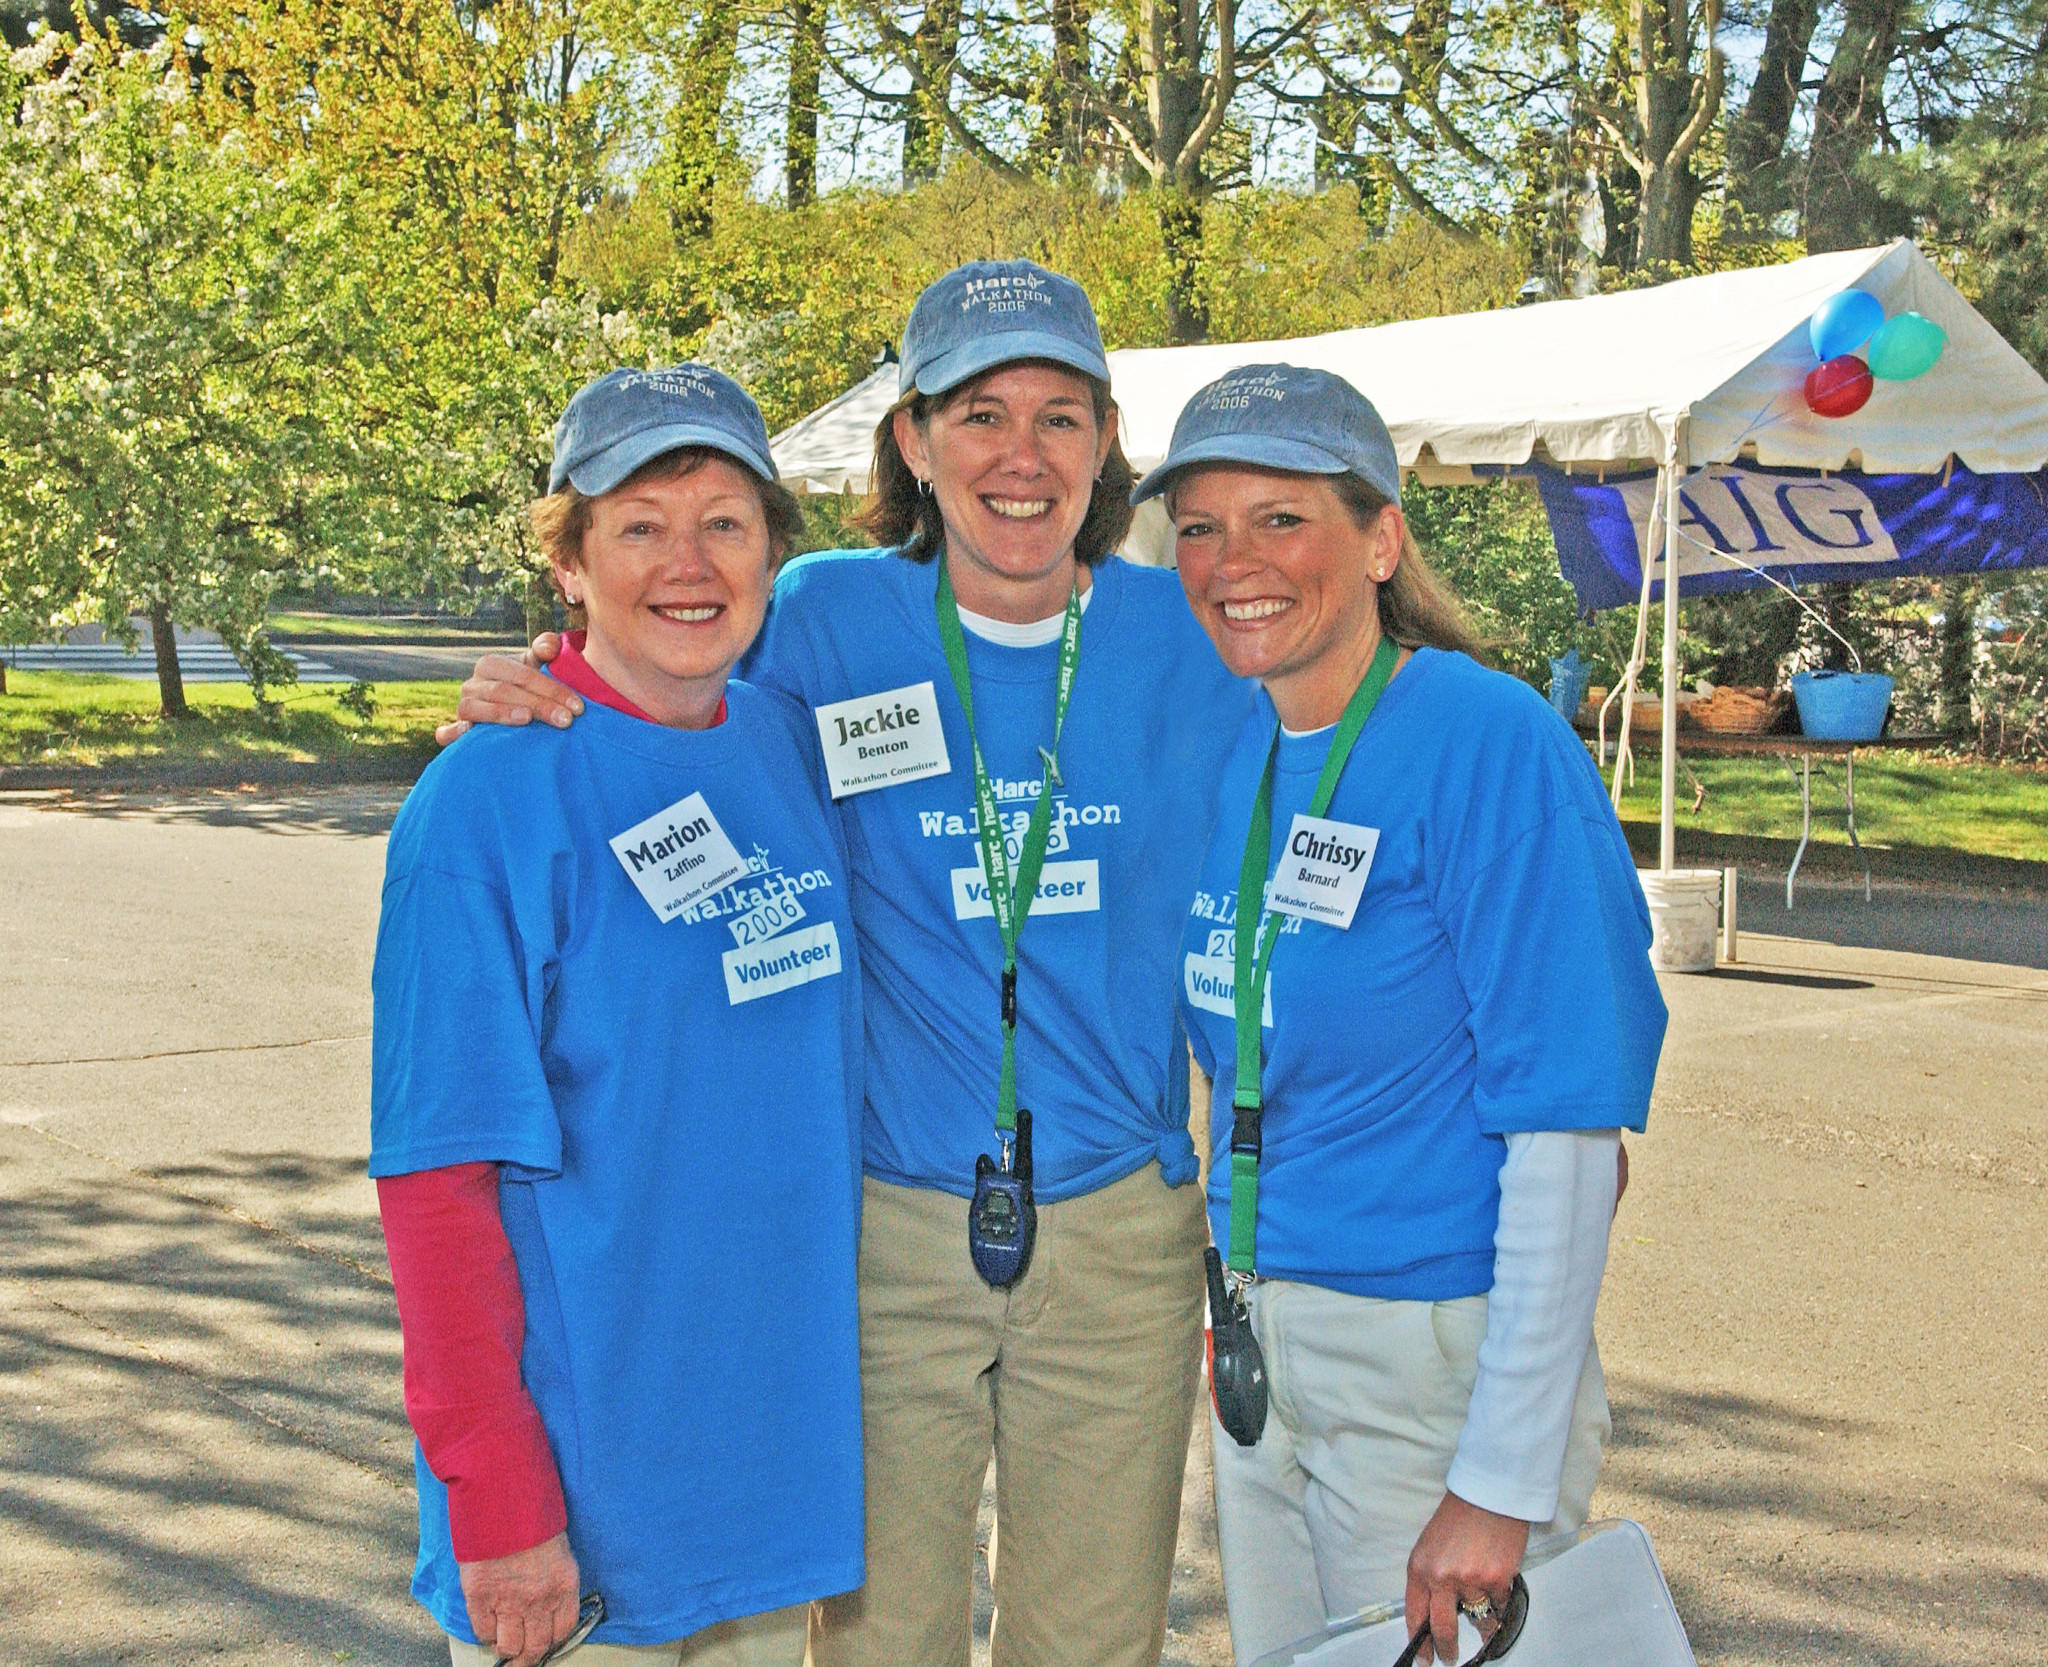 Event Founders, Marion Zaffino, Jackie Benton and Chrissy Barnard at the 2006 HarcWalk.